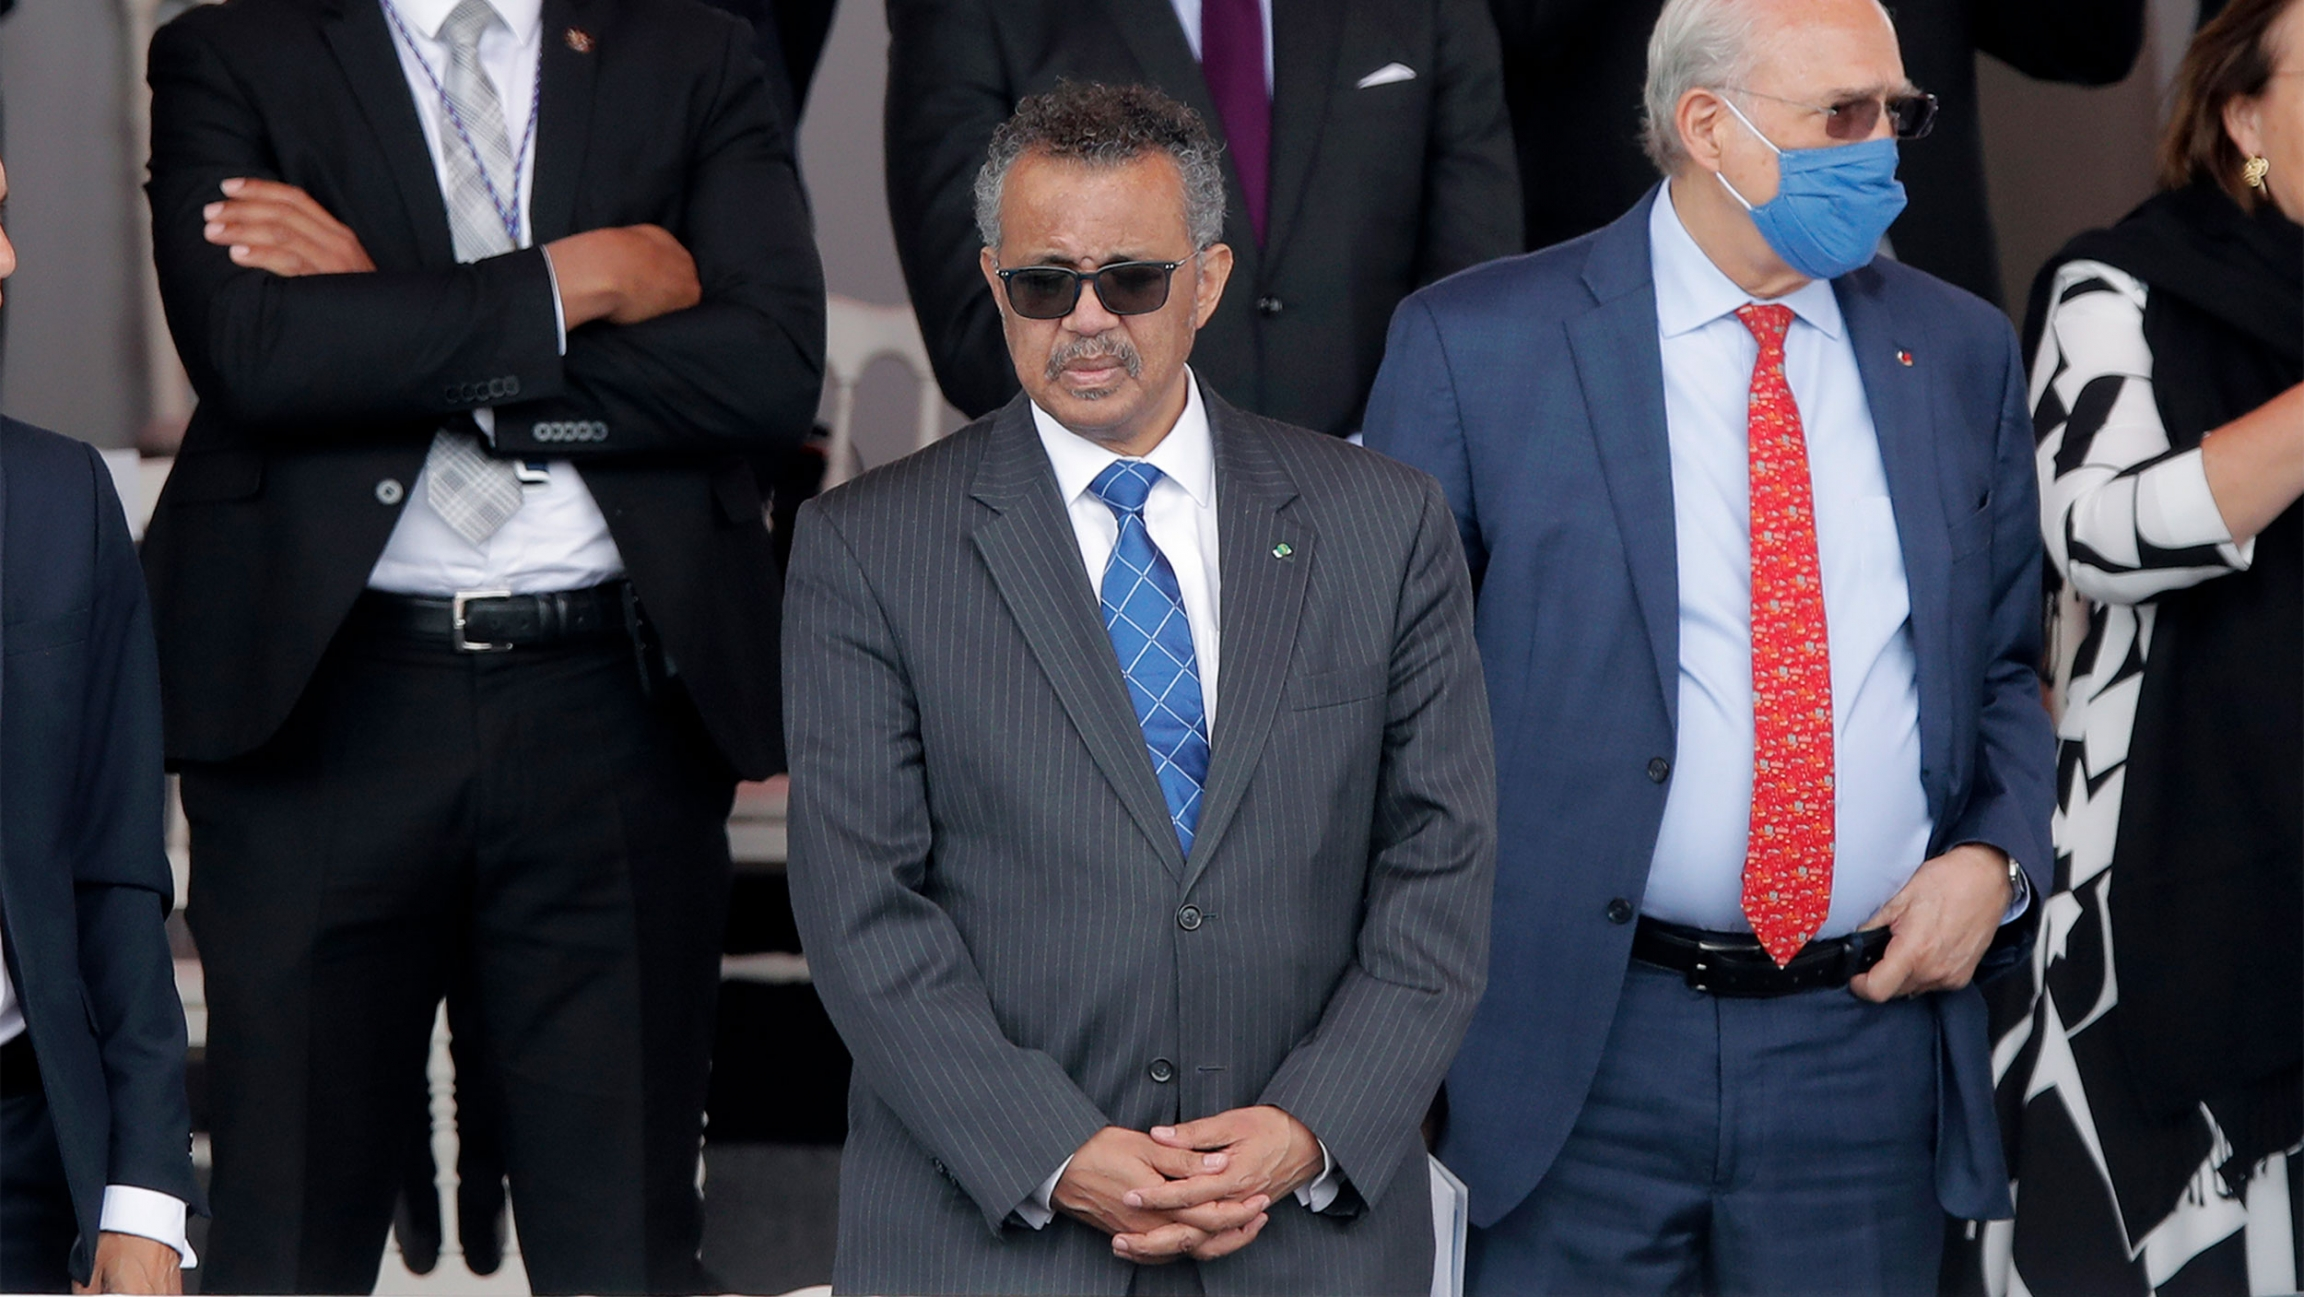 Men in suits, some wearing masks and sunglasses stand together